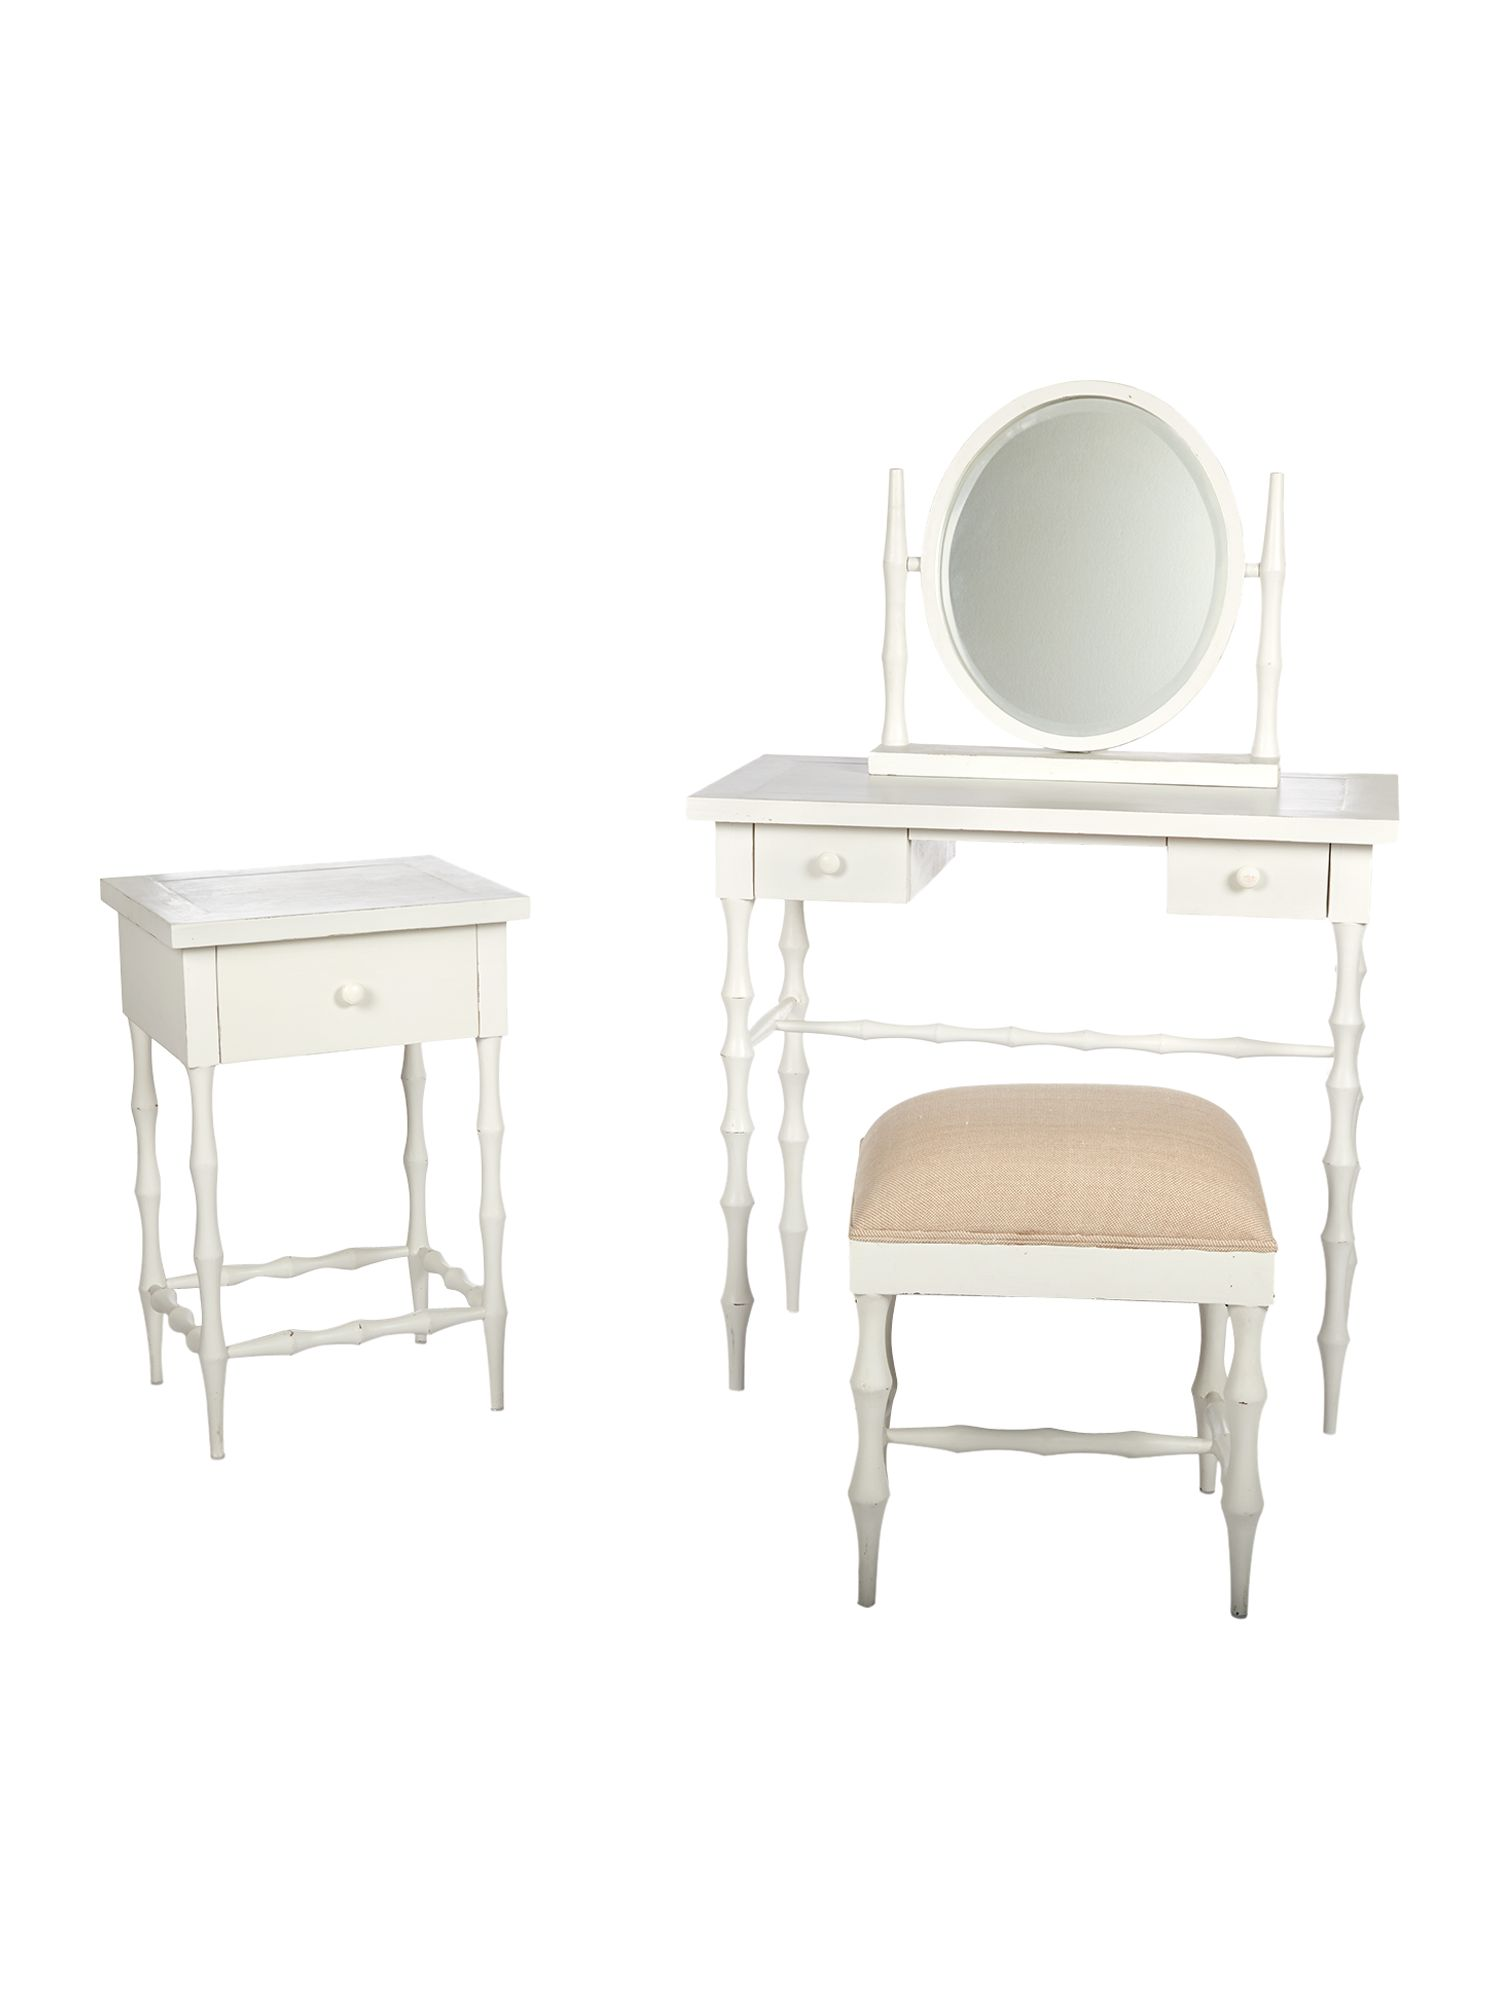 Hailey bedroom furniture range